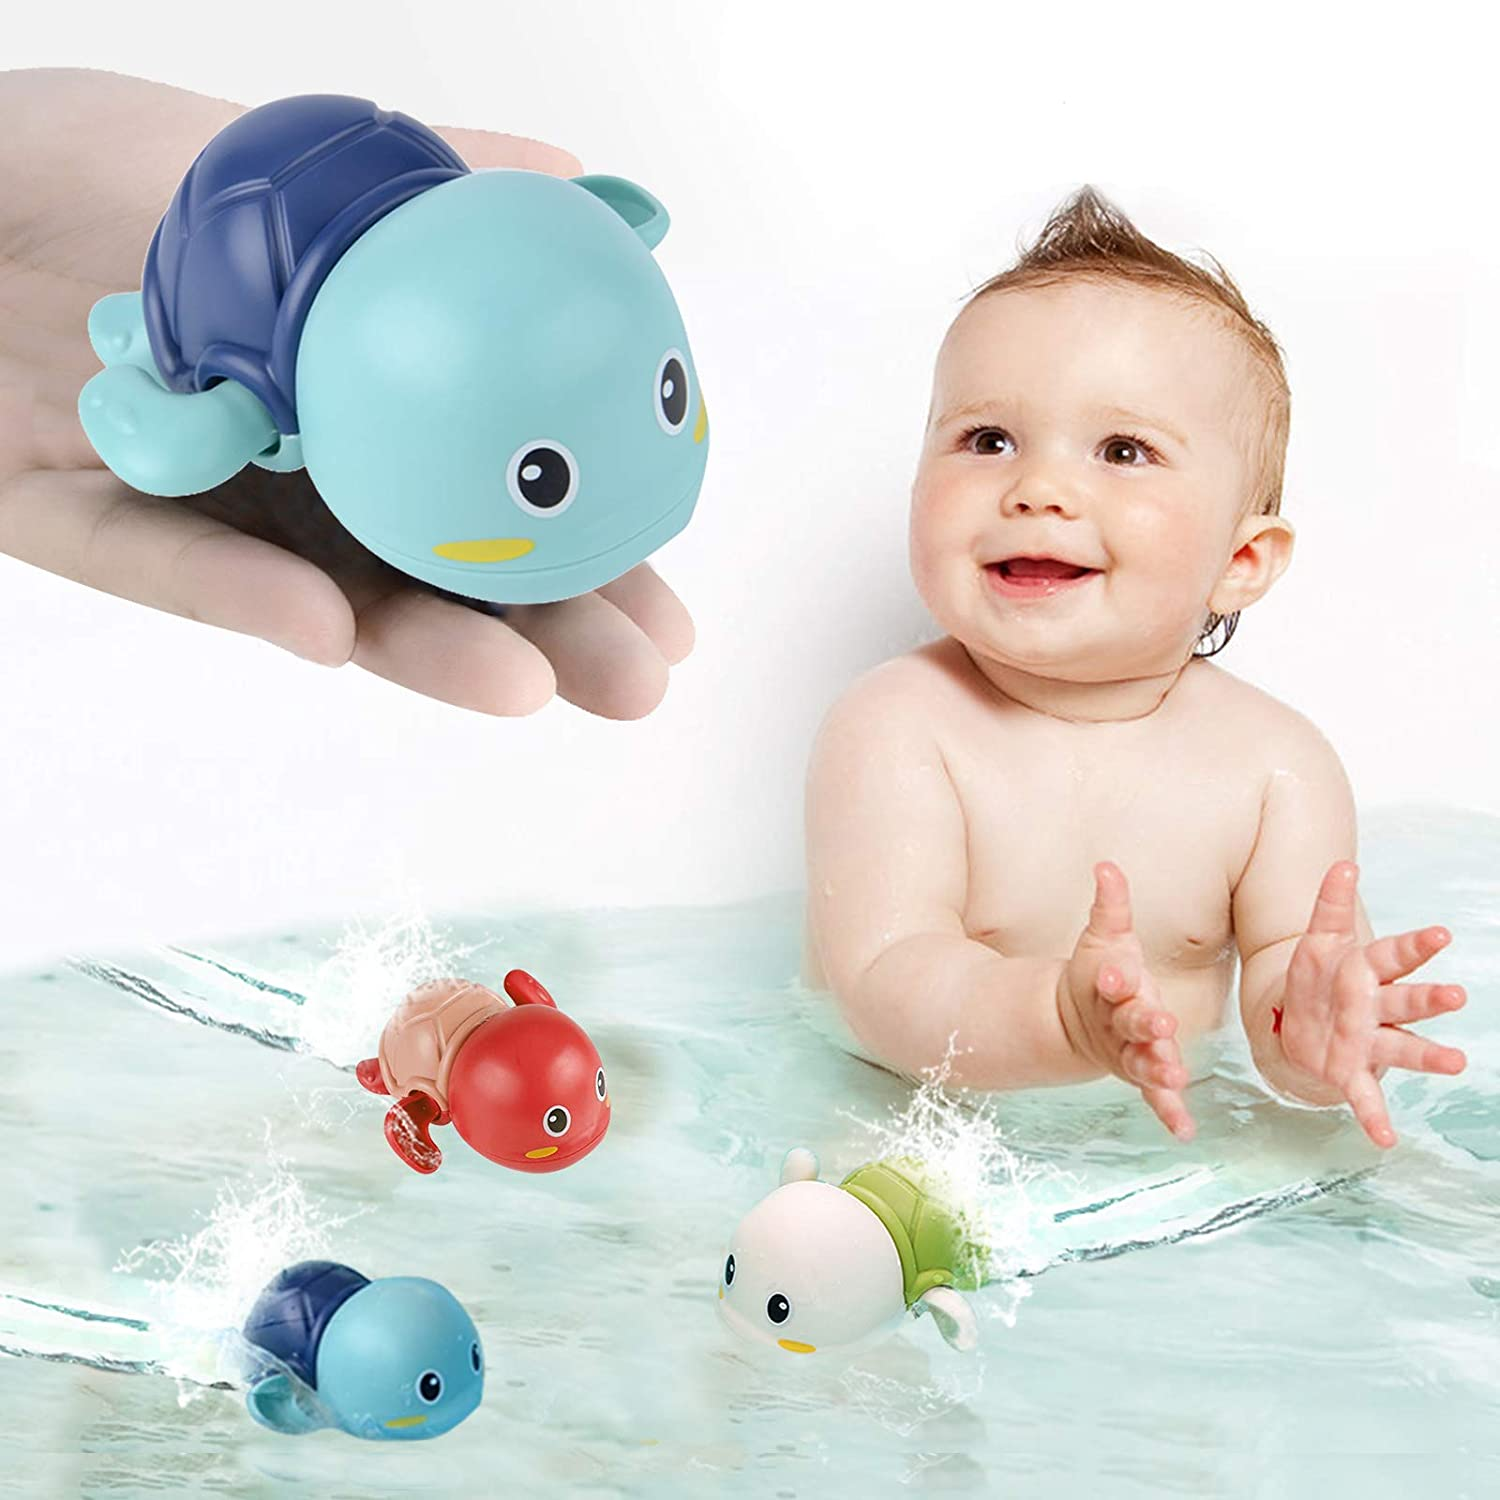 gifts-for-1-year-old-bath-toy